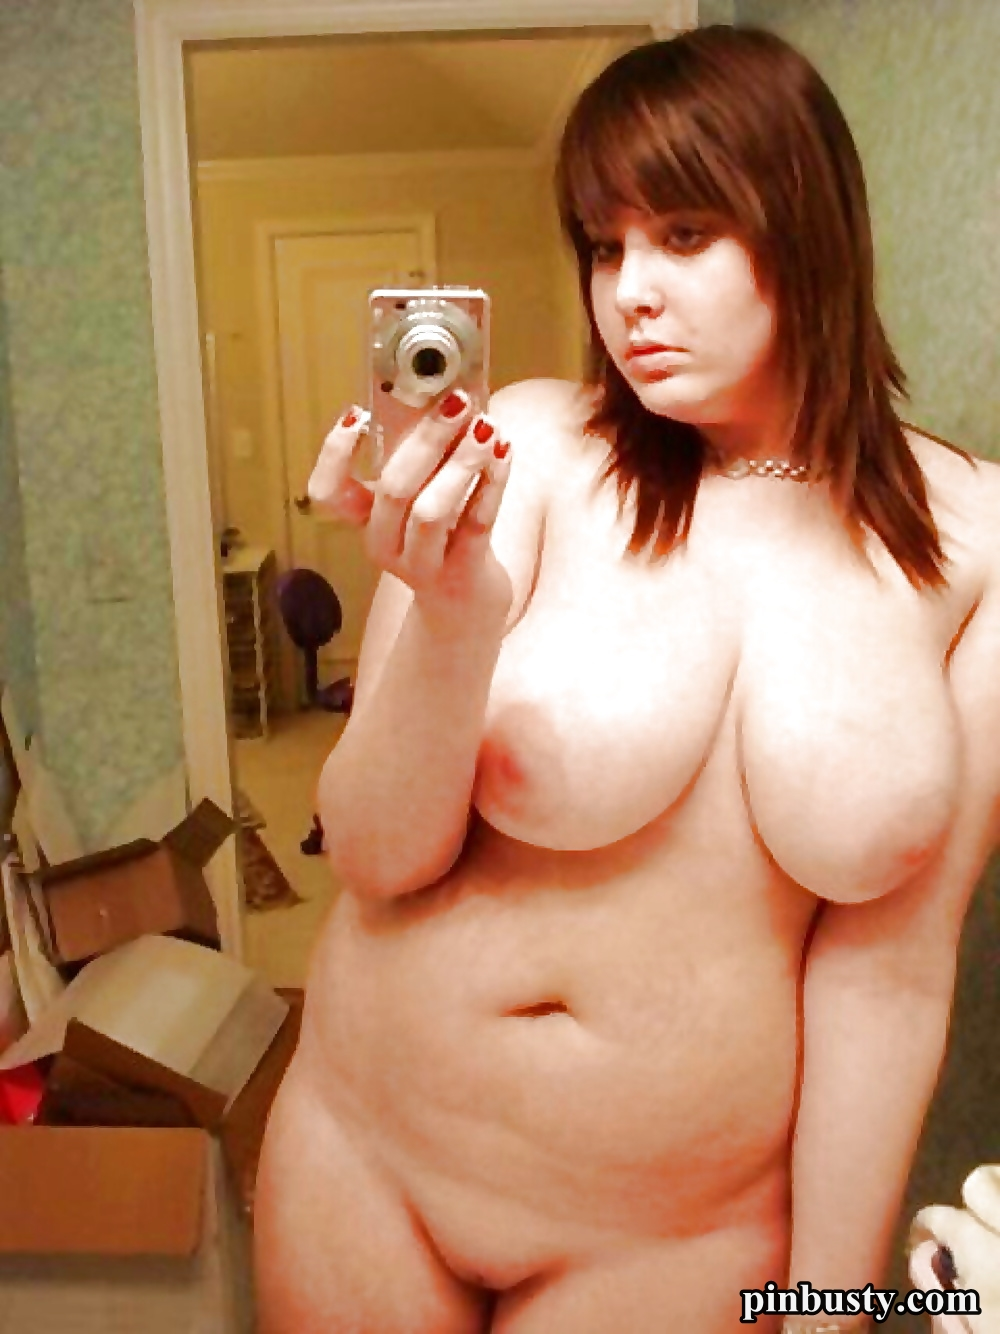 mirror girl naked selfie Chubby